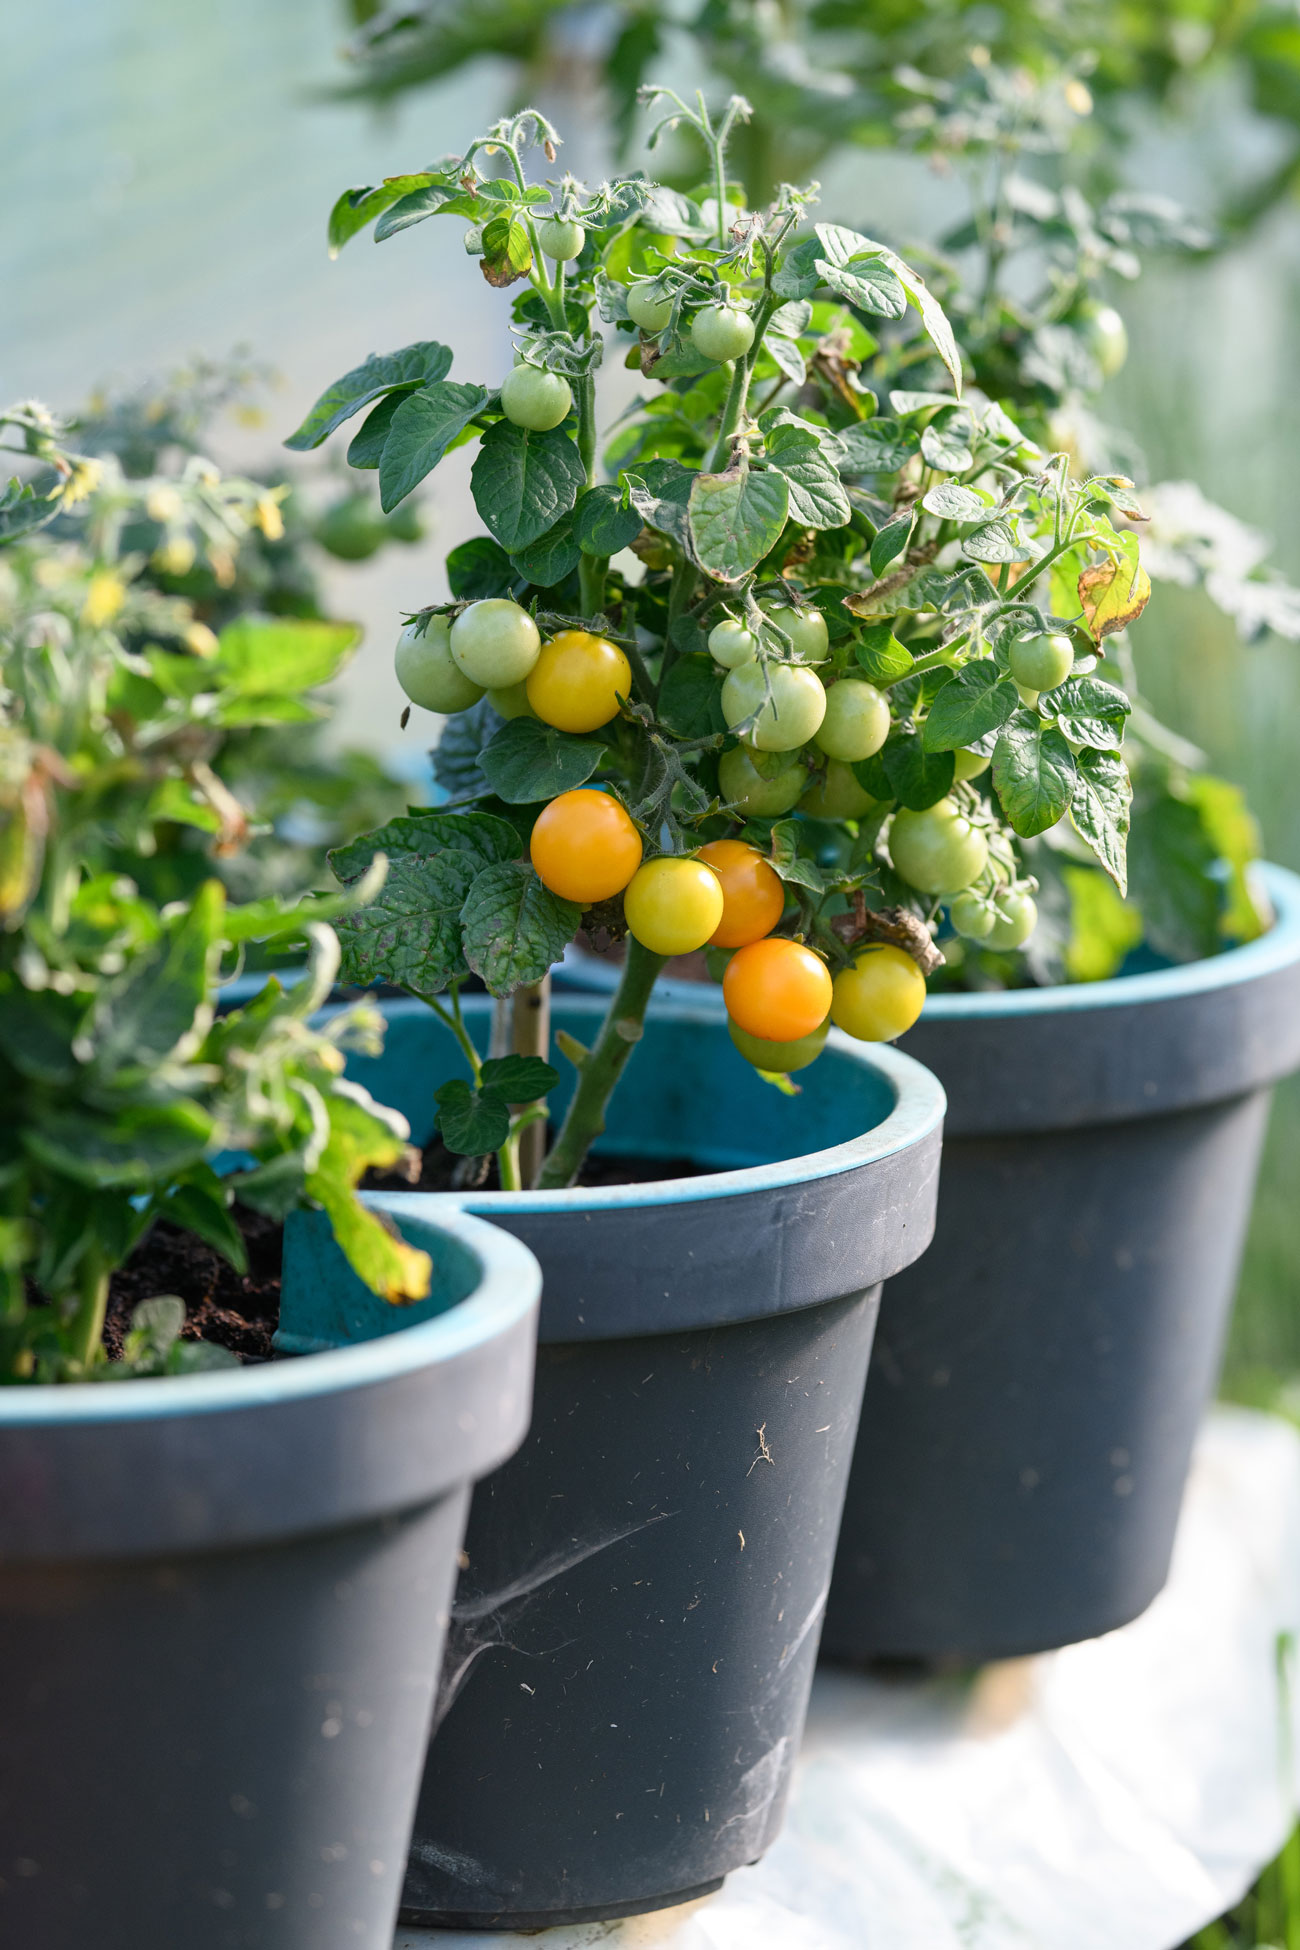 Cherry tomatoes growing outside in large pots.